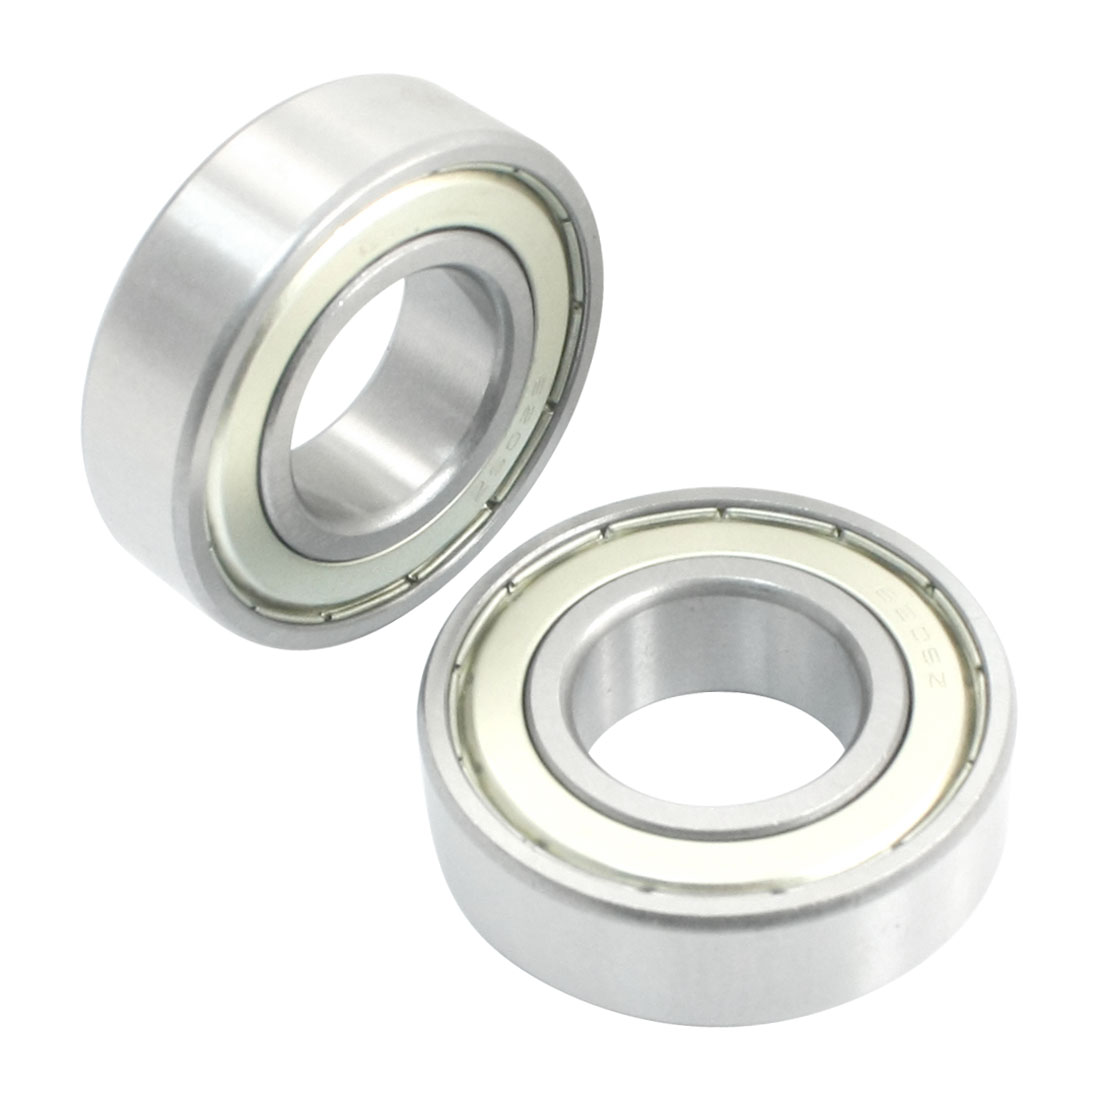 2 Pcs 6205ZZ 25mm x 52mm x 15mm Double Metal Shielded Deep Groove Ball Bearings